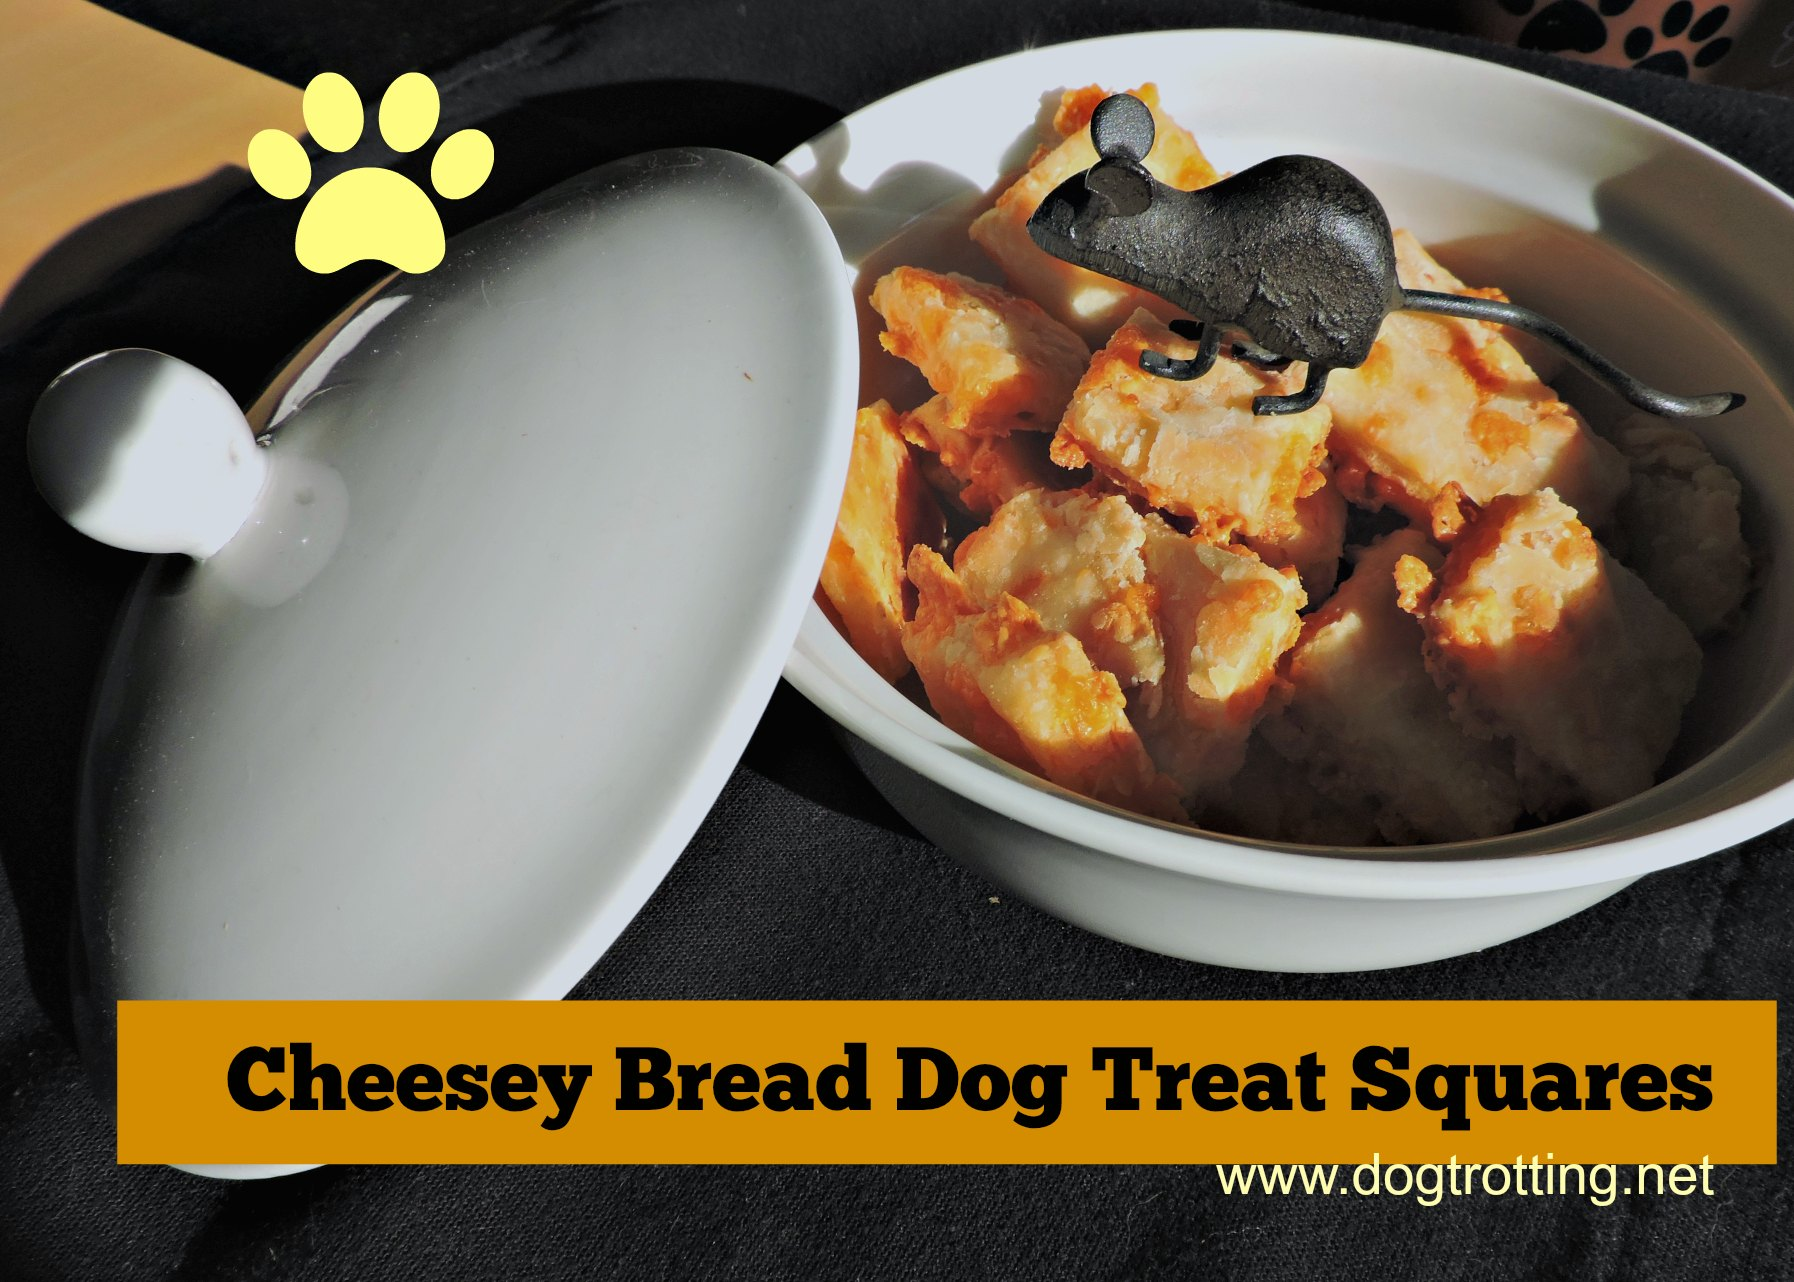 bowl of cheesey bread dog treat squares